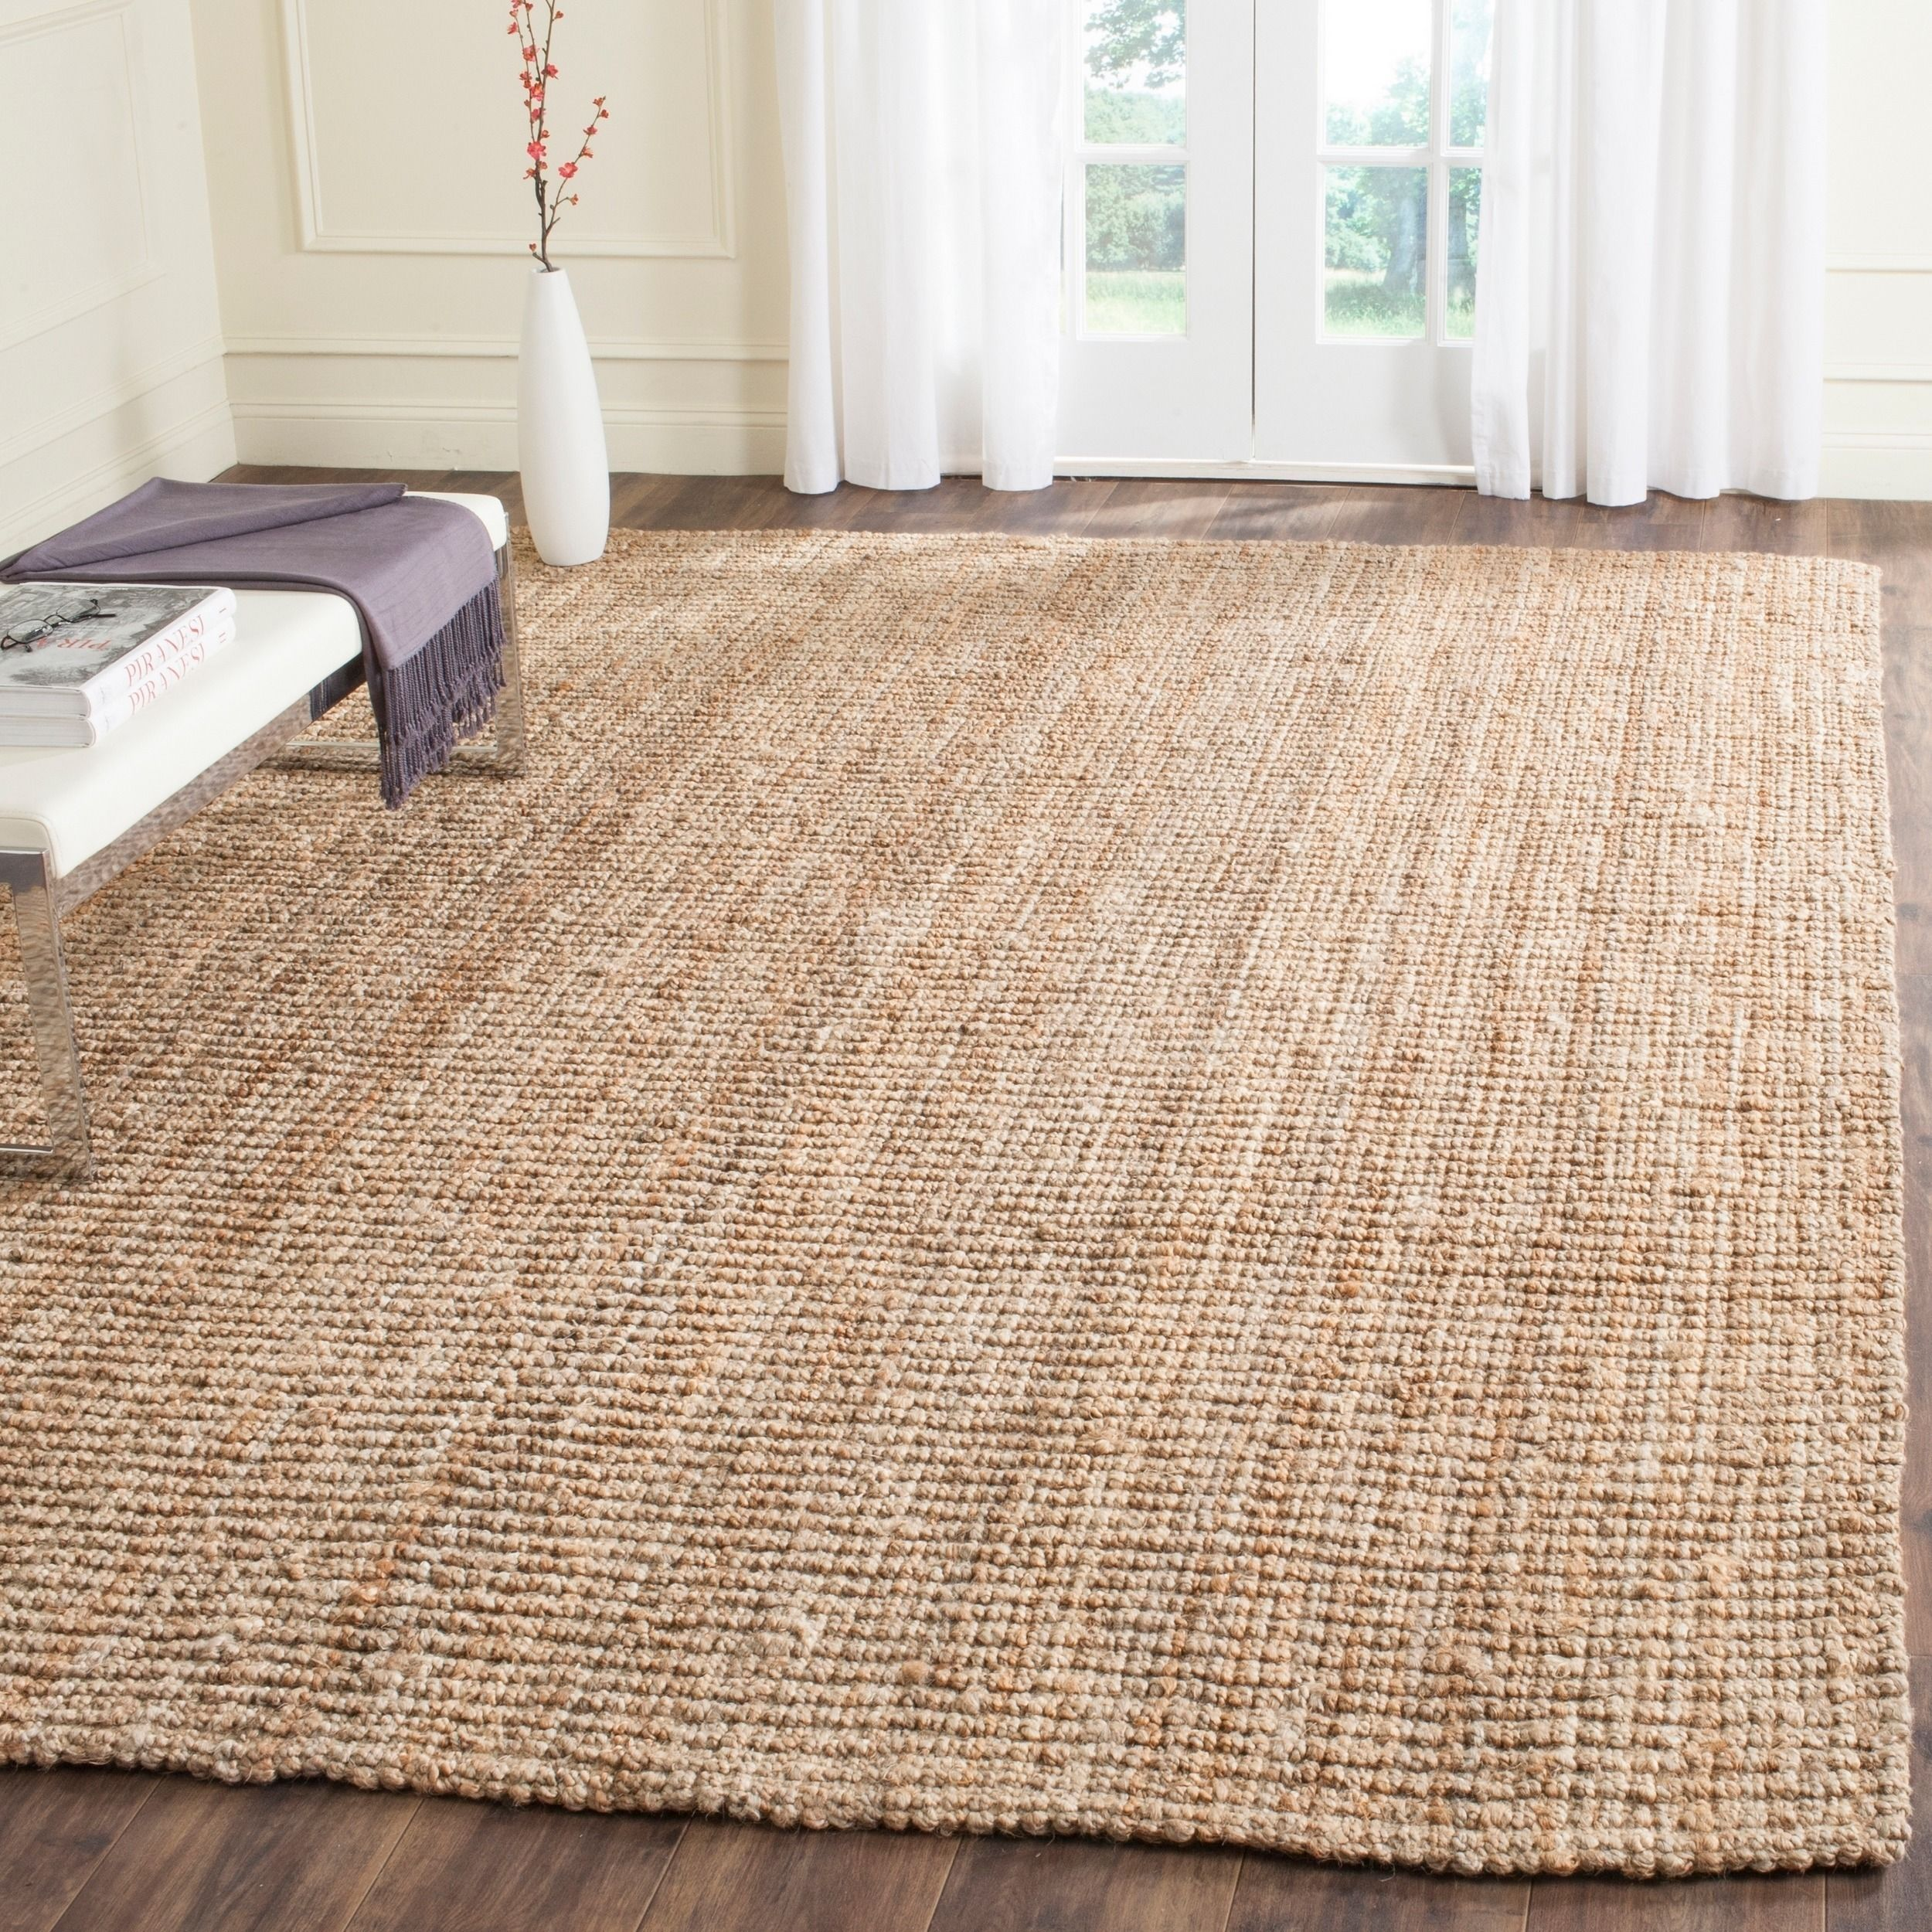 pier 1 living room rugs%0A  Overstock com  This handwoven sisal rug will bring texture and depth